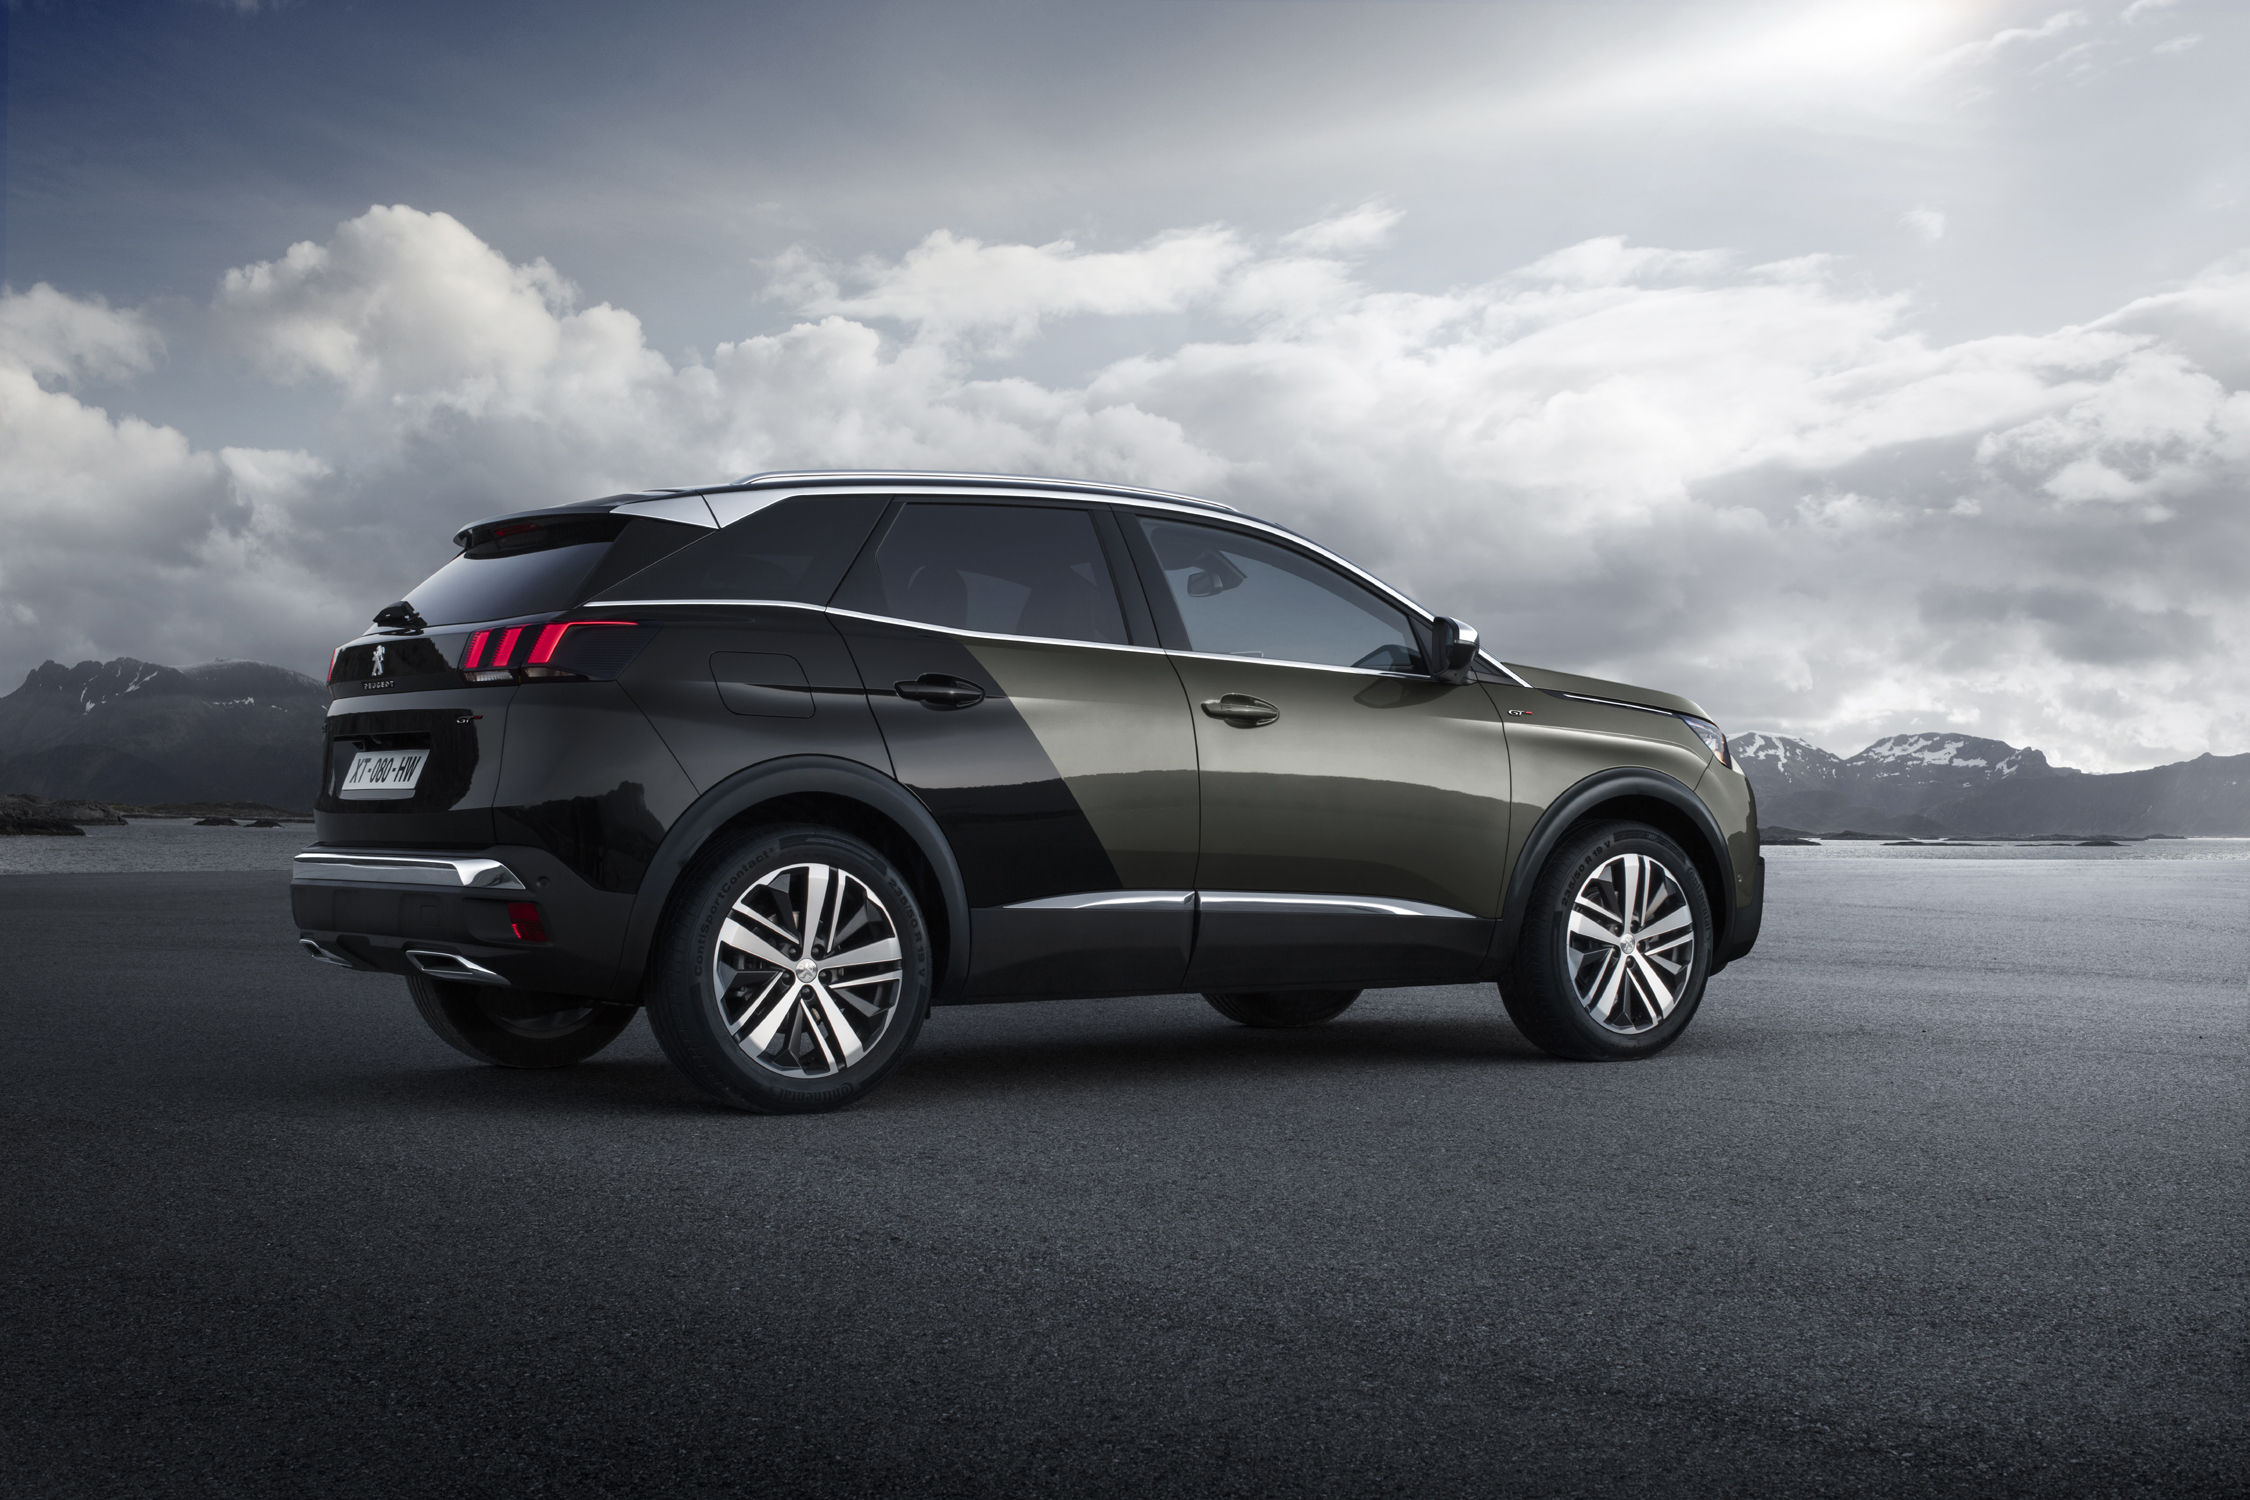 peugeot 3008 gt la sportivit en plus actualit. Black Bedroom Furniture Sets. Home Design Ideas